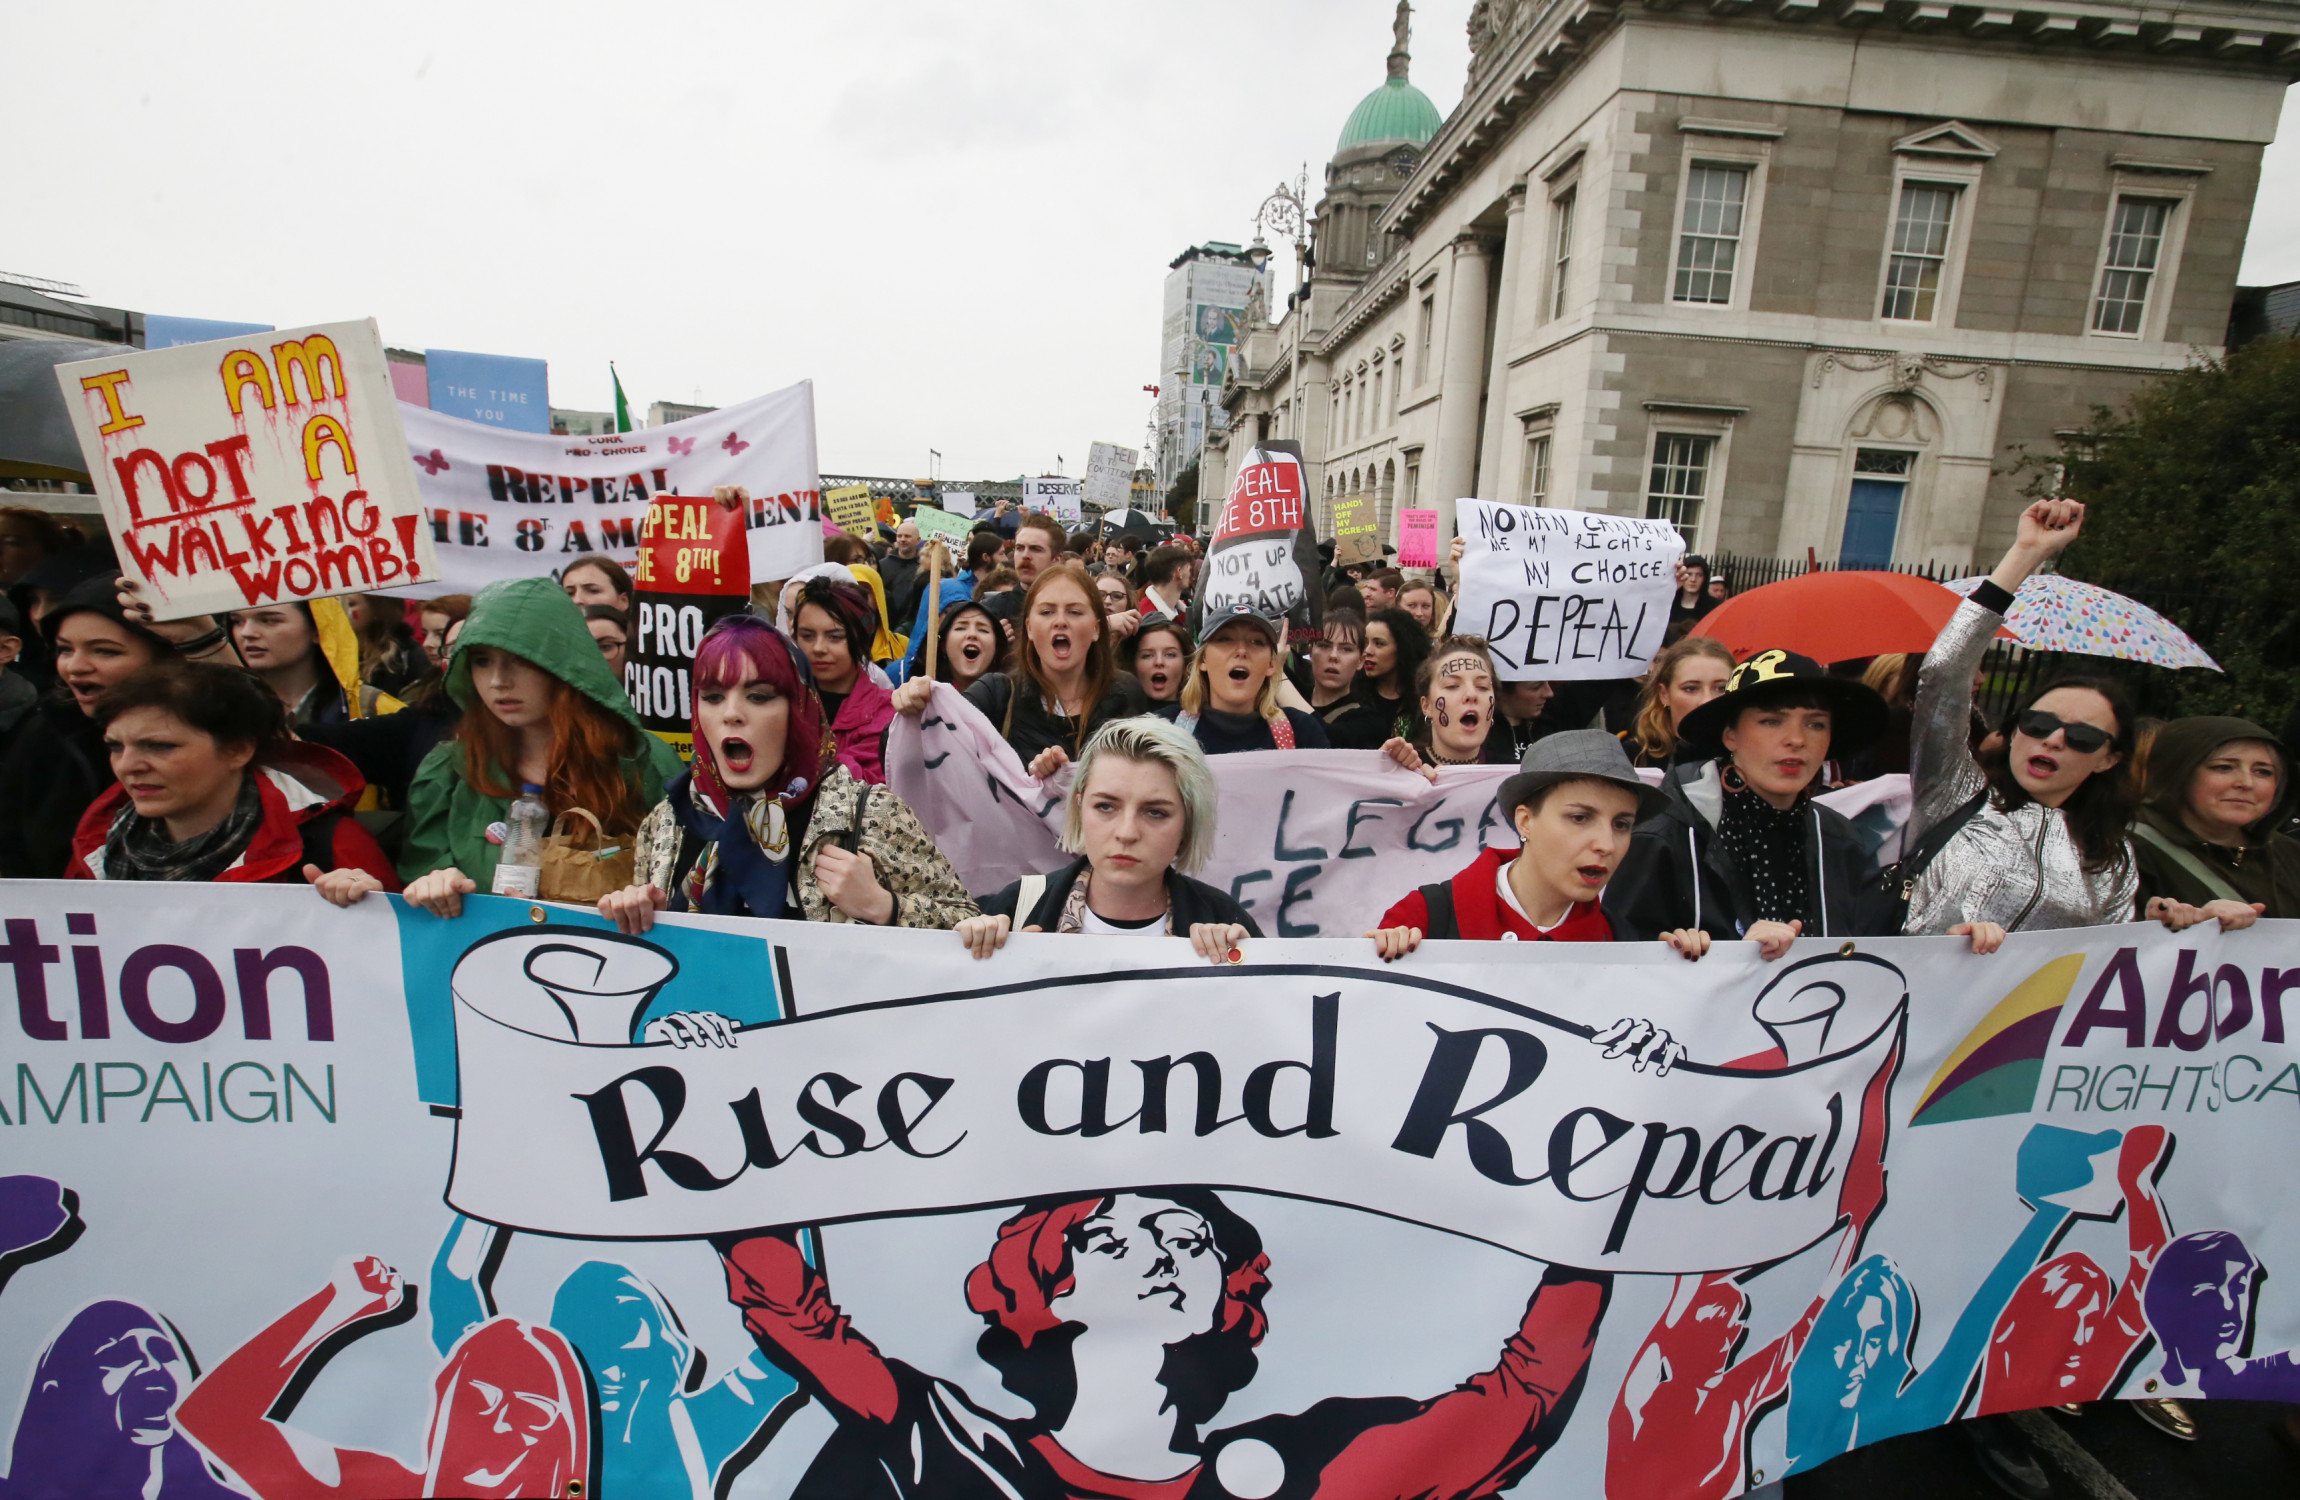 Thousands taking part in March for Choice rally